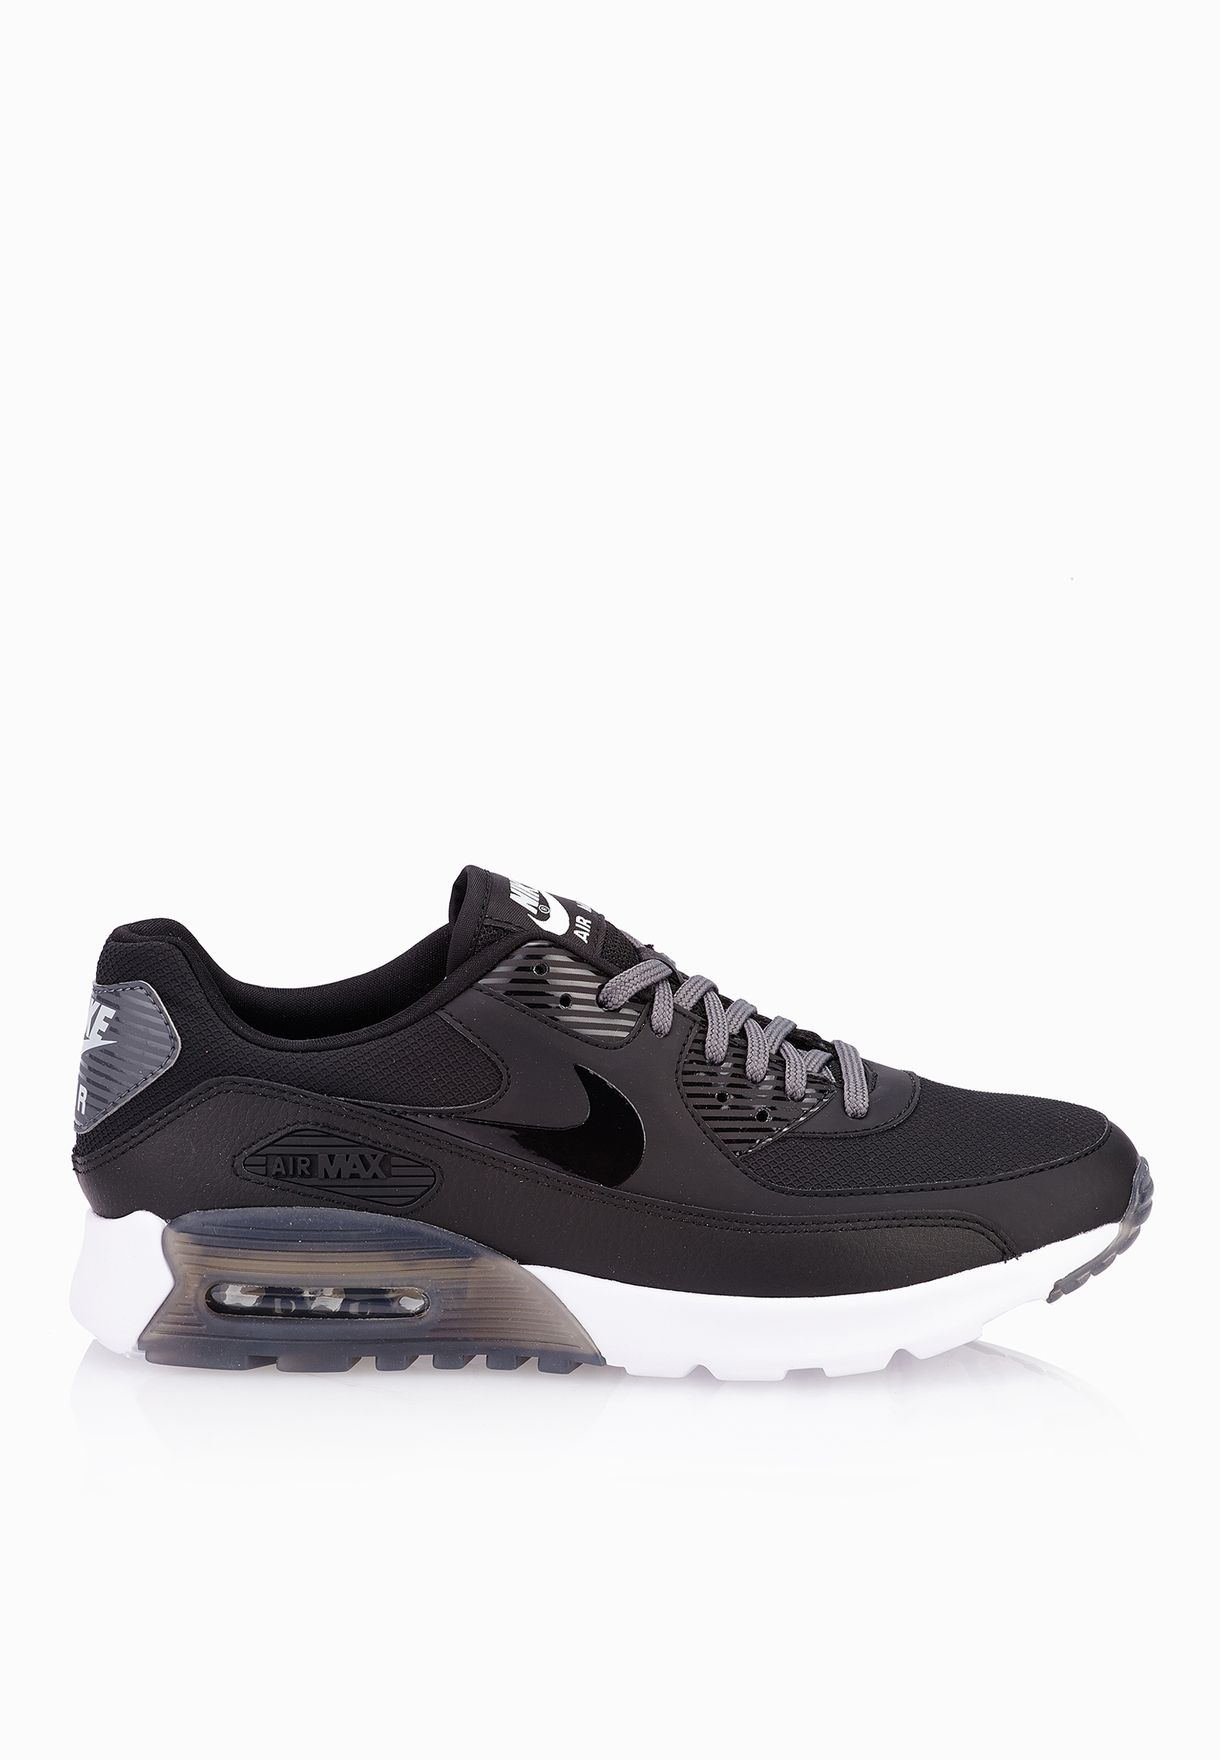 Nike Air Max 90 Ultra Essential Womens 724981 003 Black